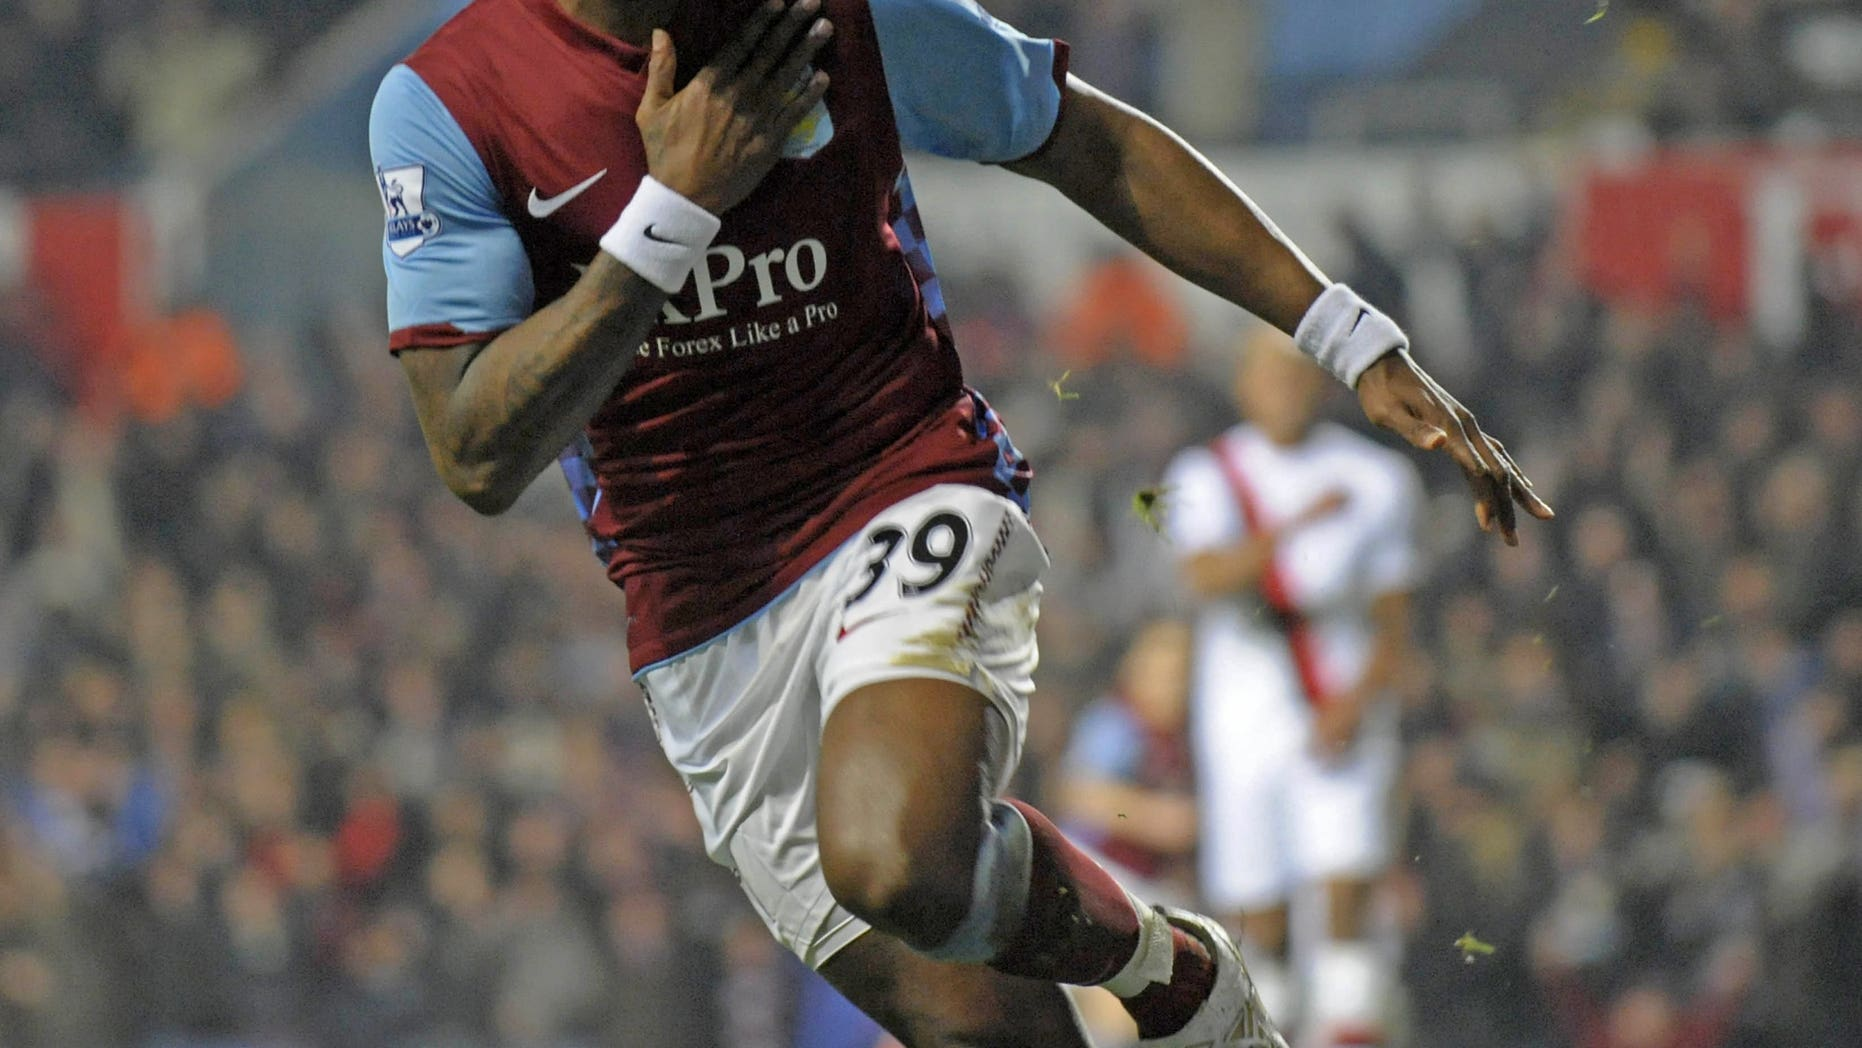 Aston Villa striker Darren Bent celebrates scoring a goal against Manchester City in Birmingham on January 22, 2011. Bent has hit out at Aston Villa manager Paul Lambert, in an interview published, over his treatment during his time at Villa Park.